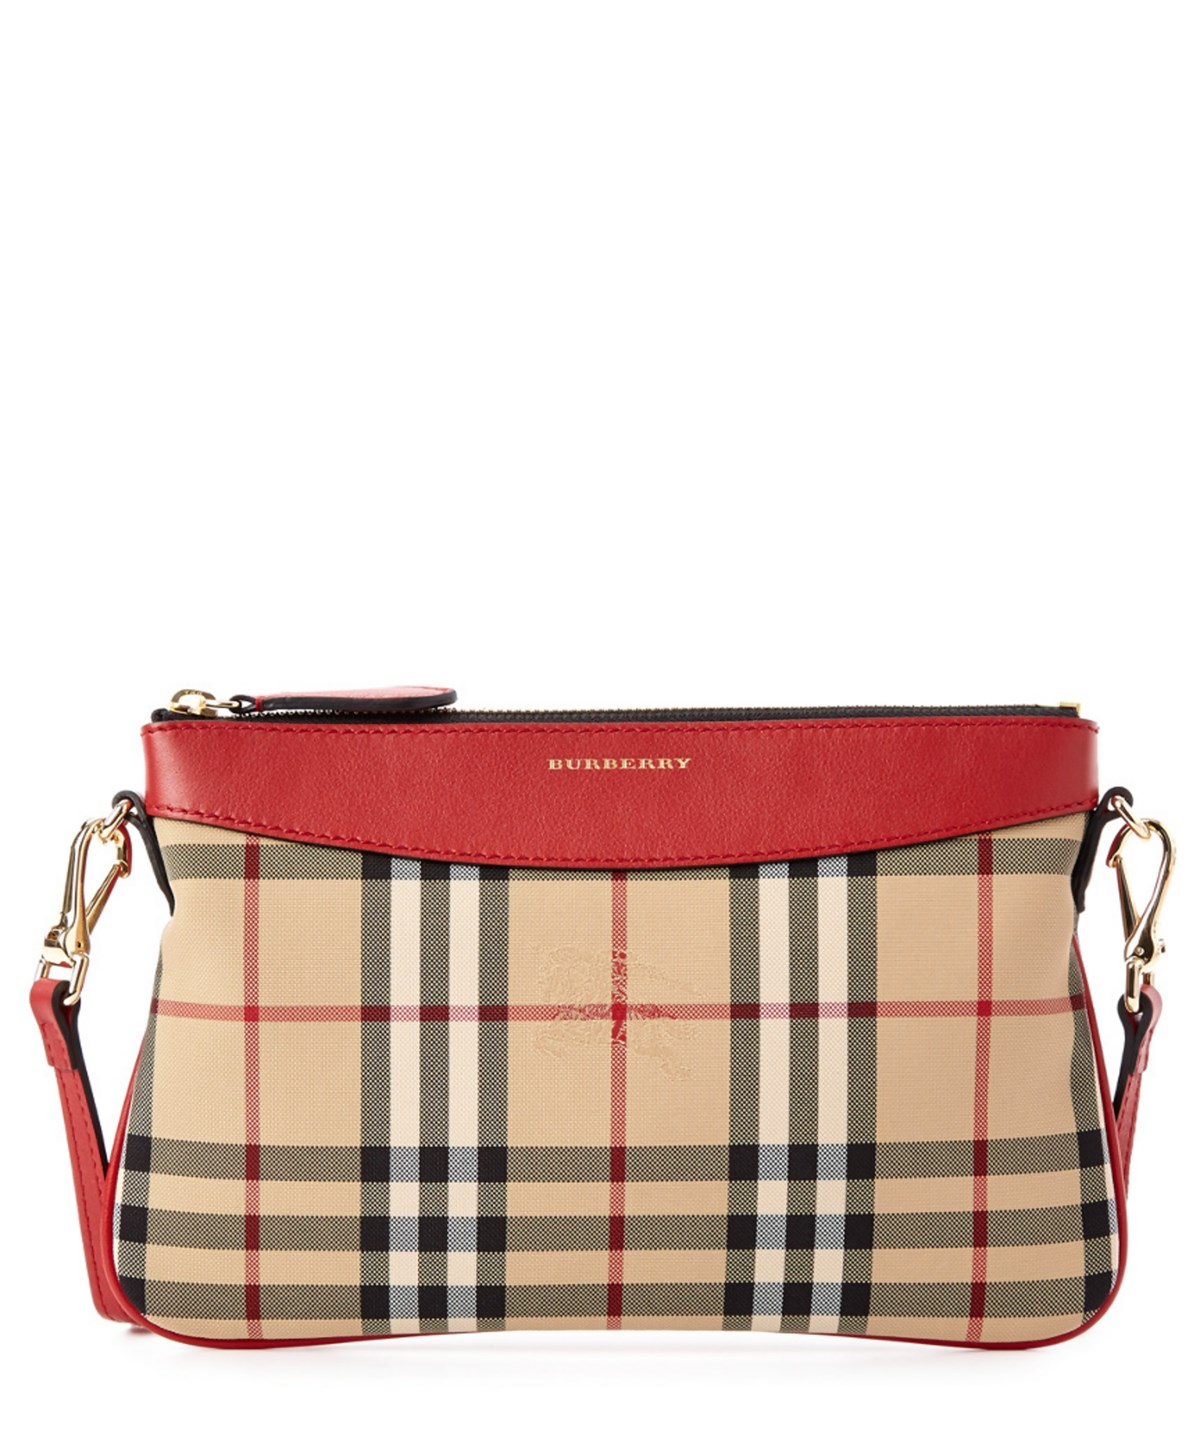 709efa4f0a87 Burberry Peyton Horseferry Check Clutch Bag In Pink